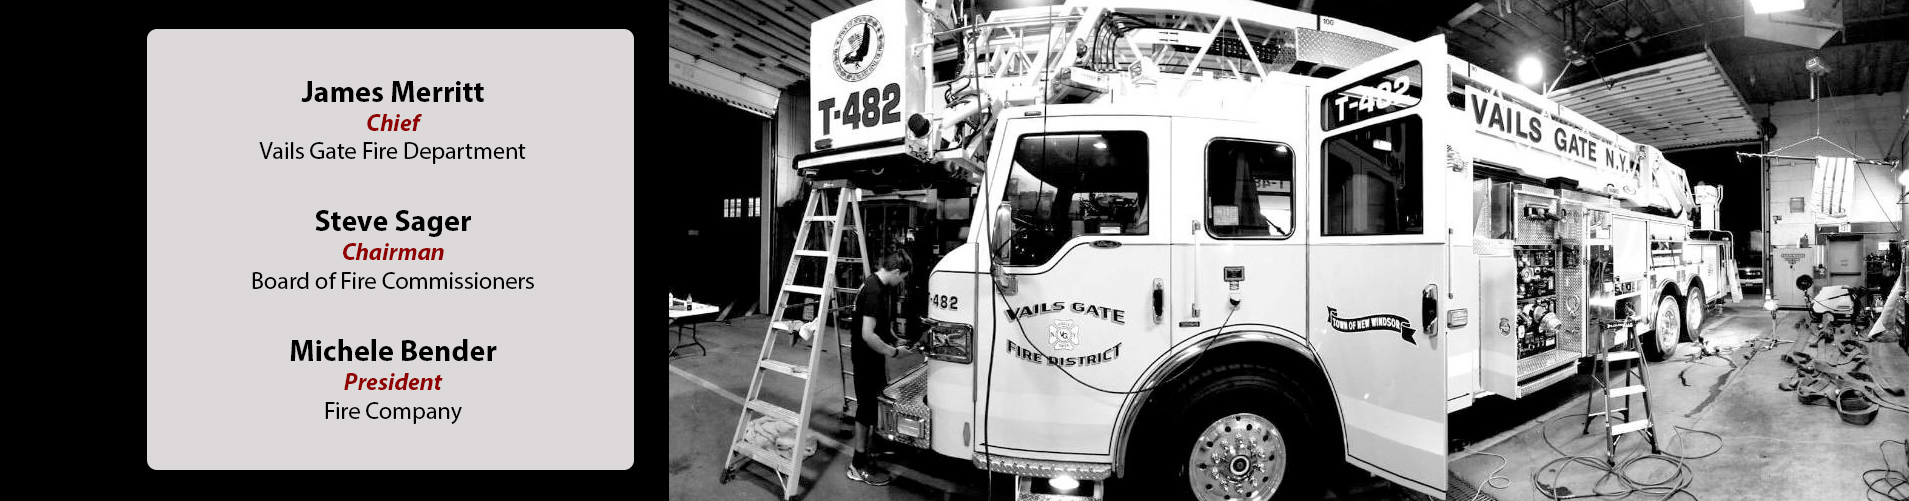 Vails Gate Fire Department